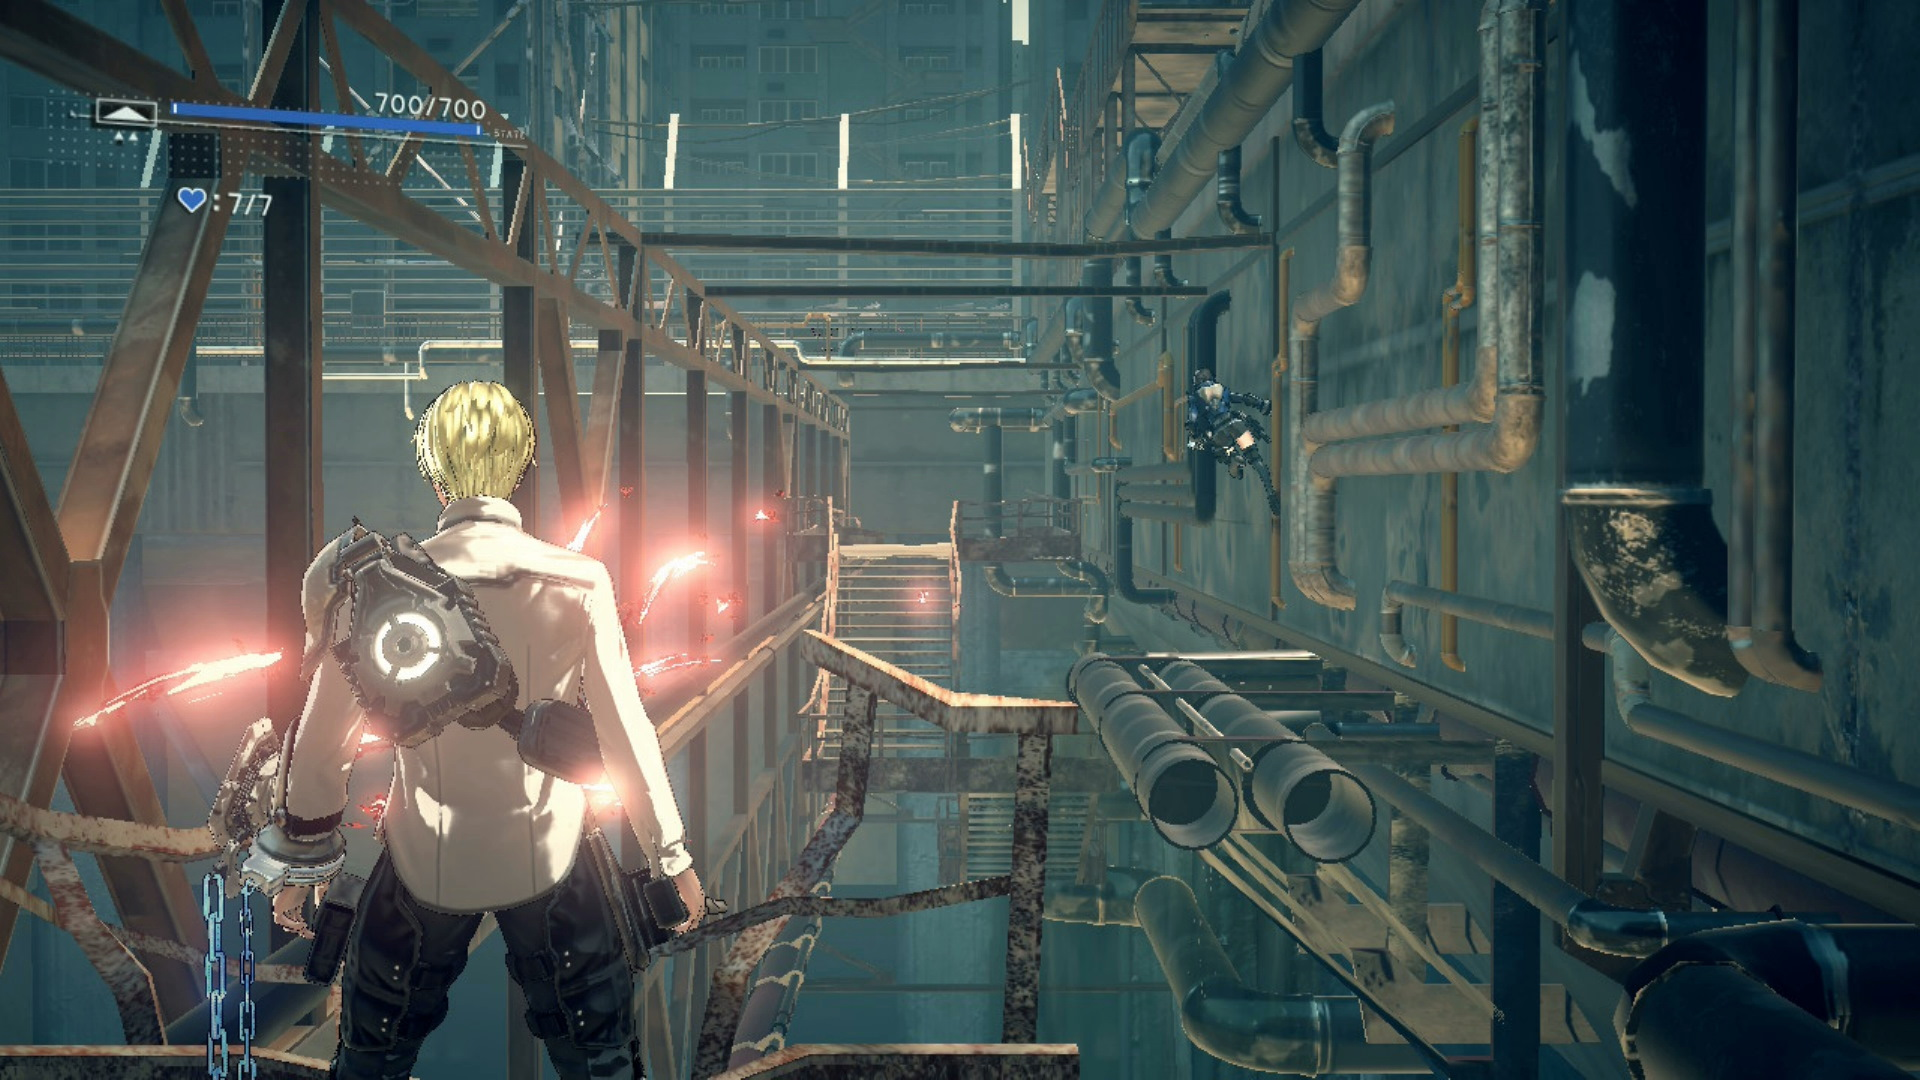 A screenshot from Astral Chain